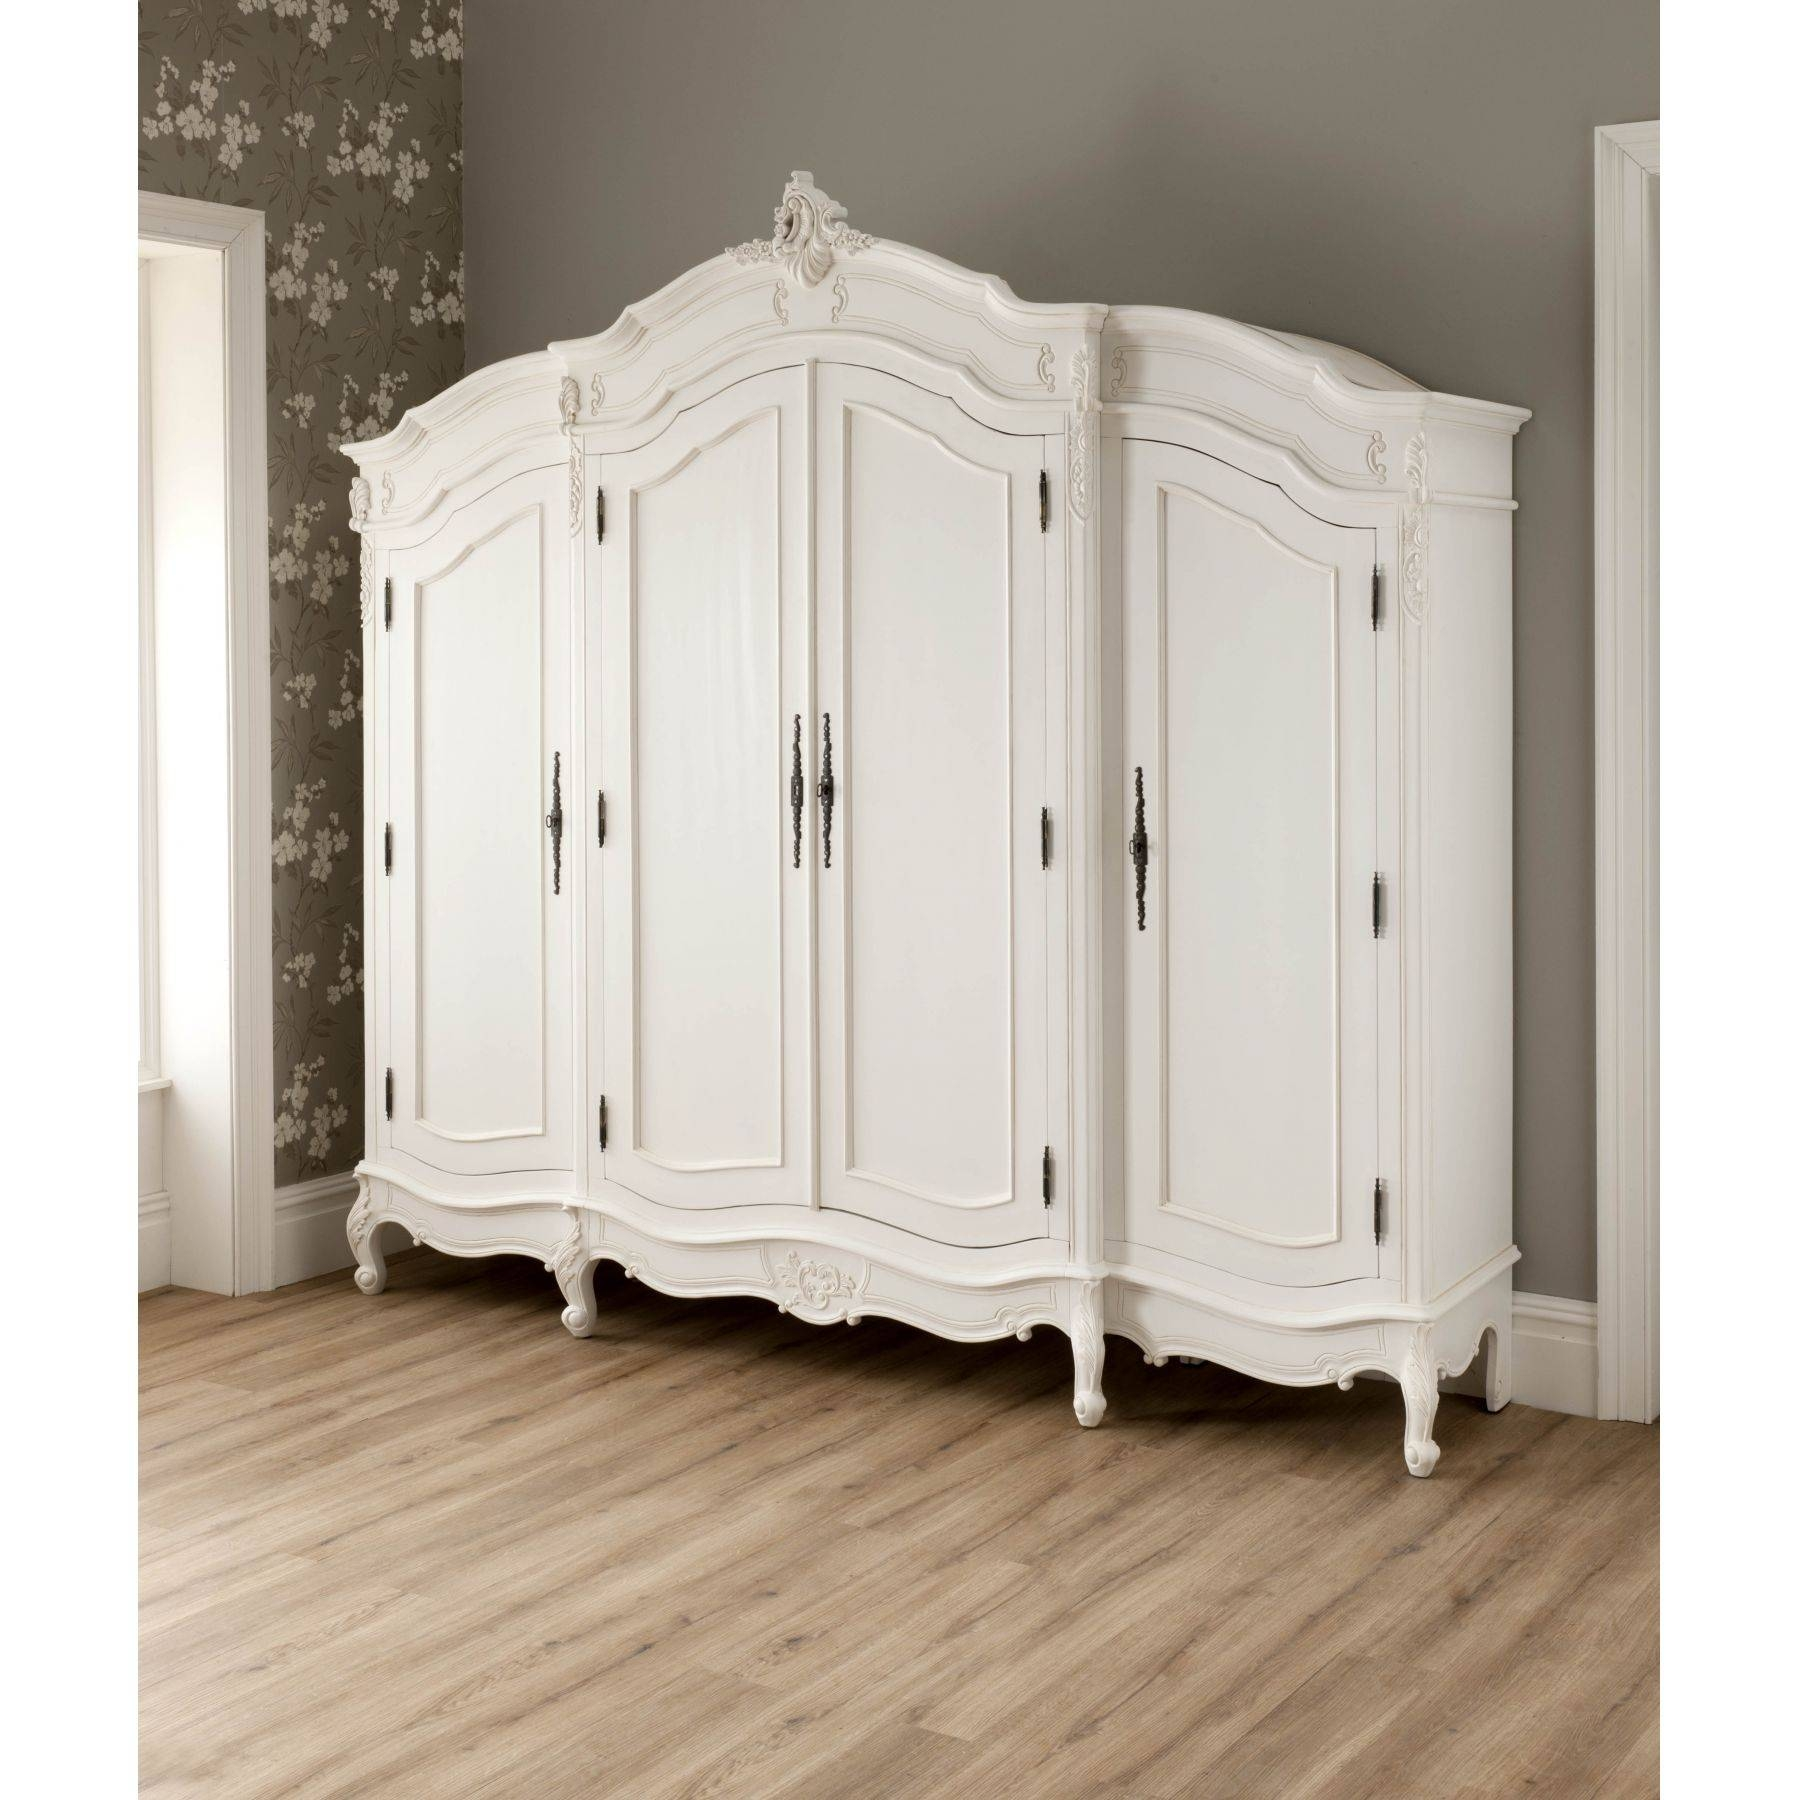 Antique Wardrobes: Vintage French Décor Ideas – Interior Design With White Vintage Wardrobes (View 6 of 15)